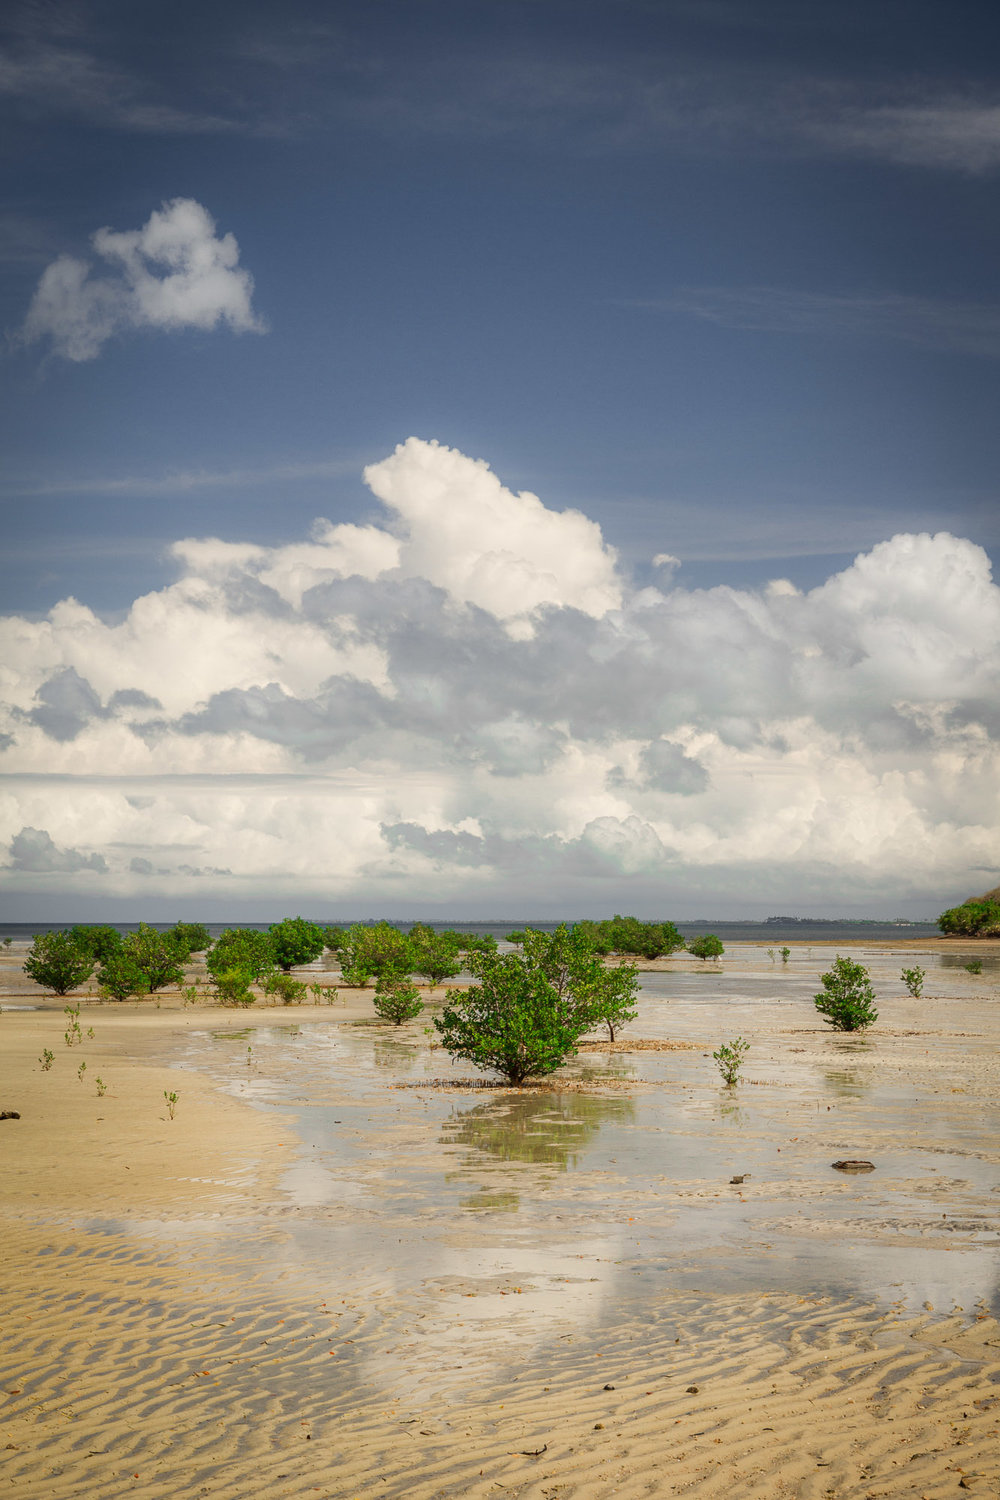 Mangroves on the north-east side of the island.